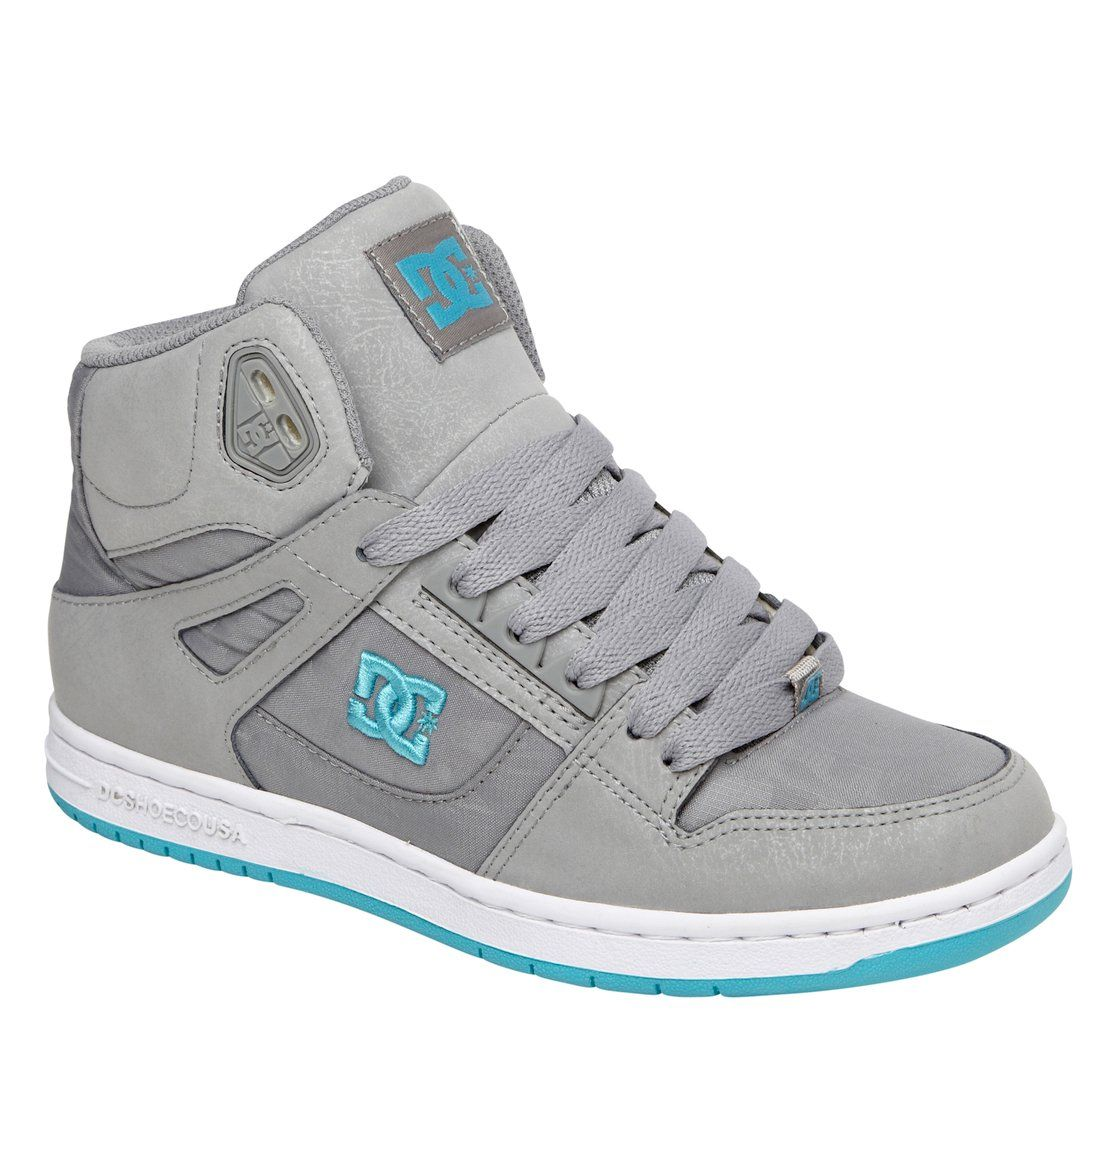 Zapatos negros DC Shoes Rebound para mujer